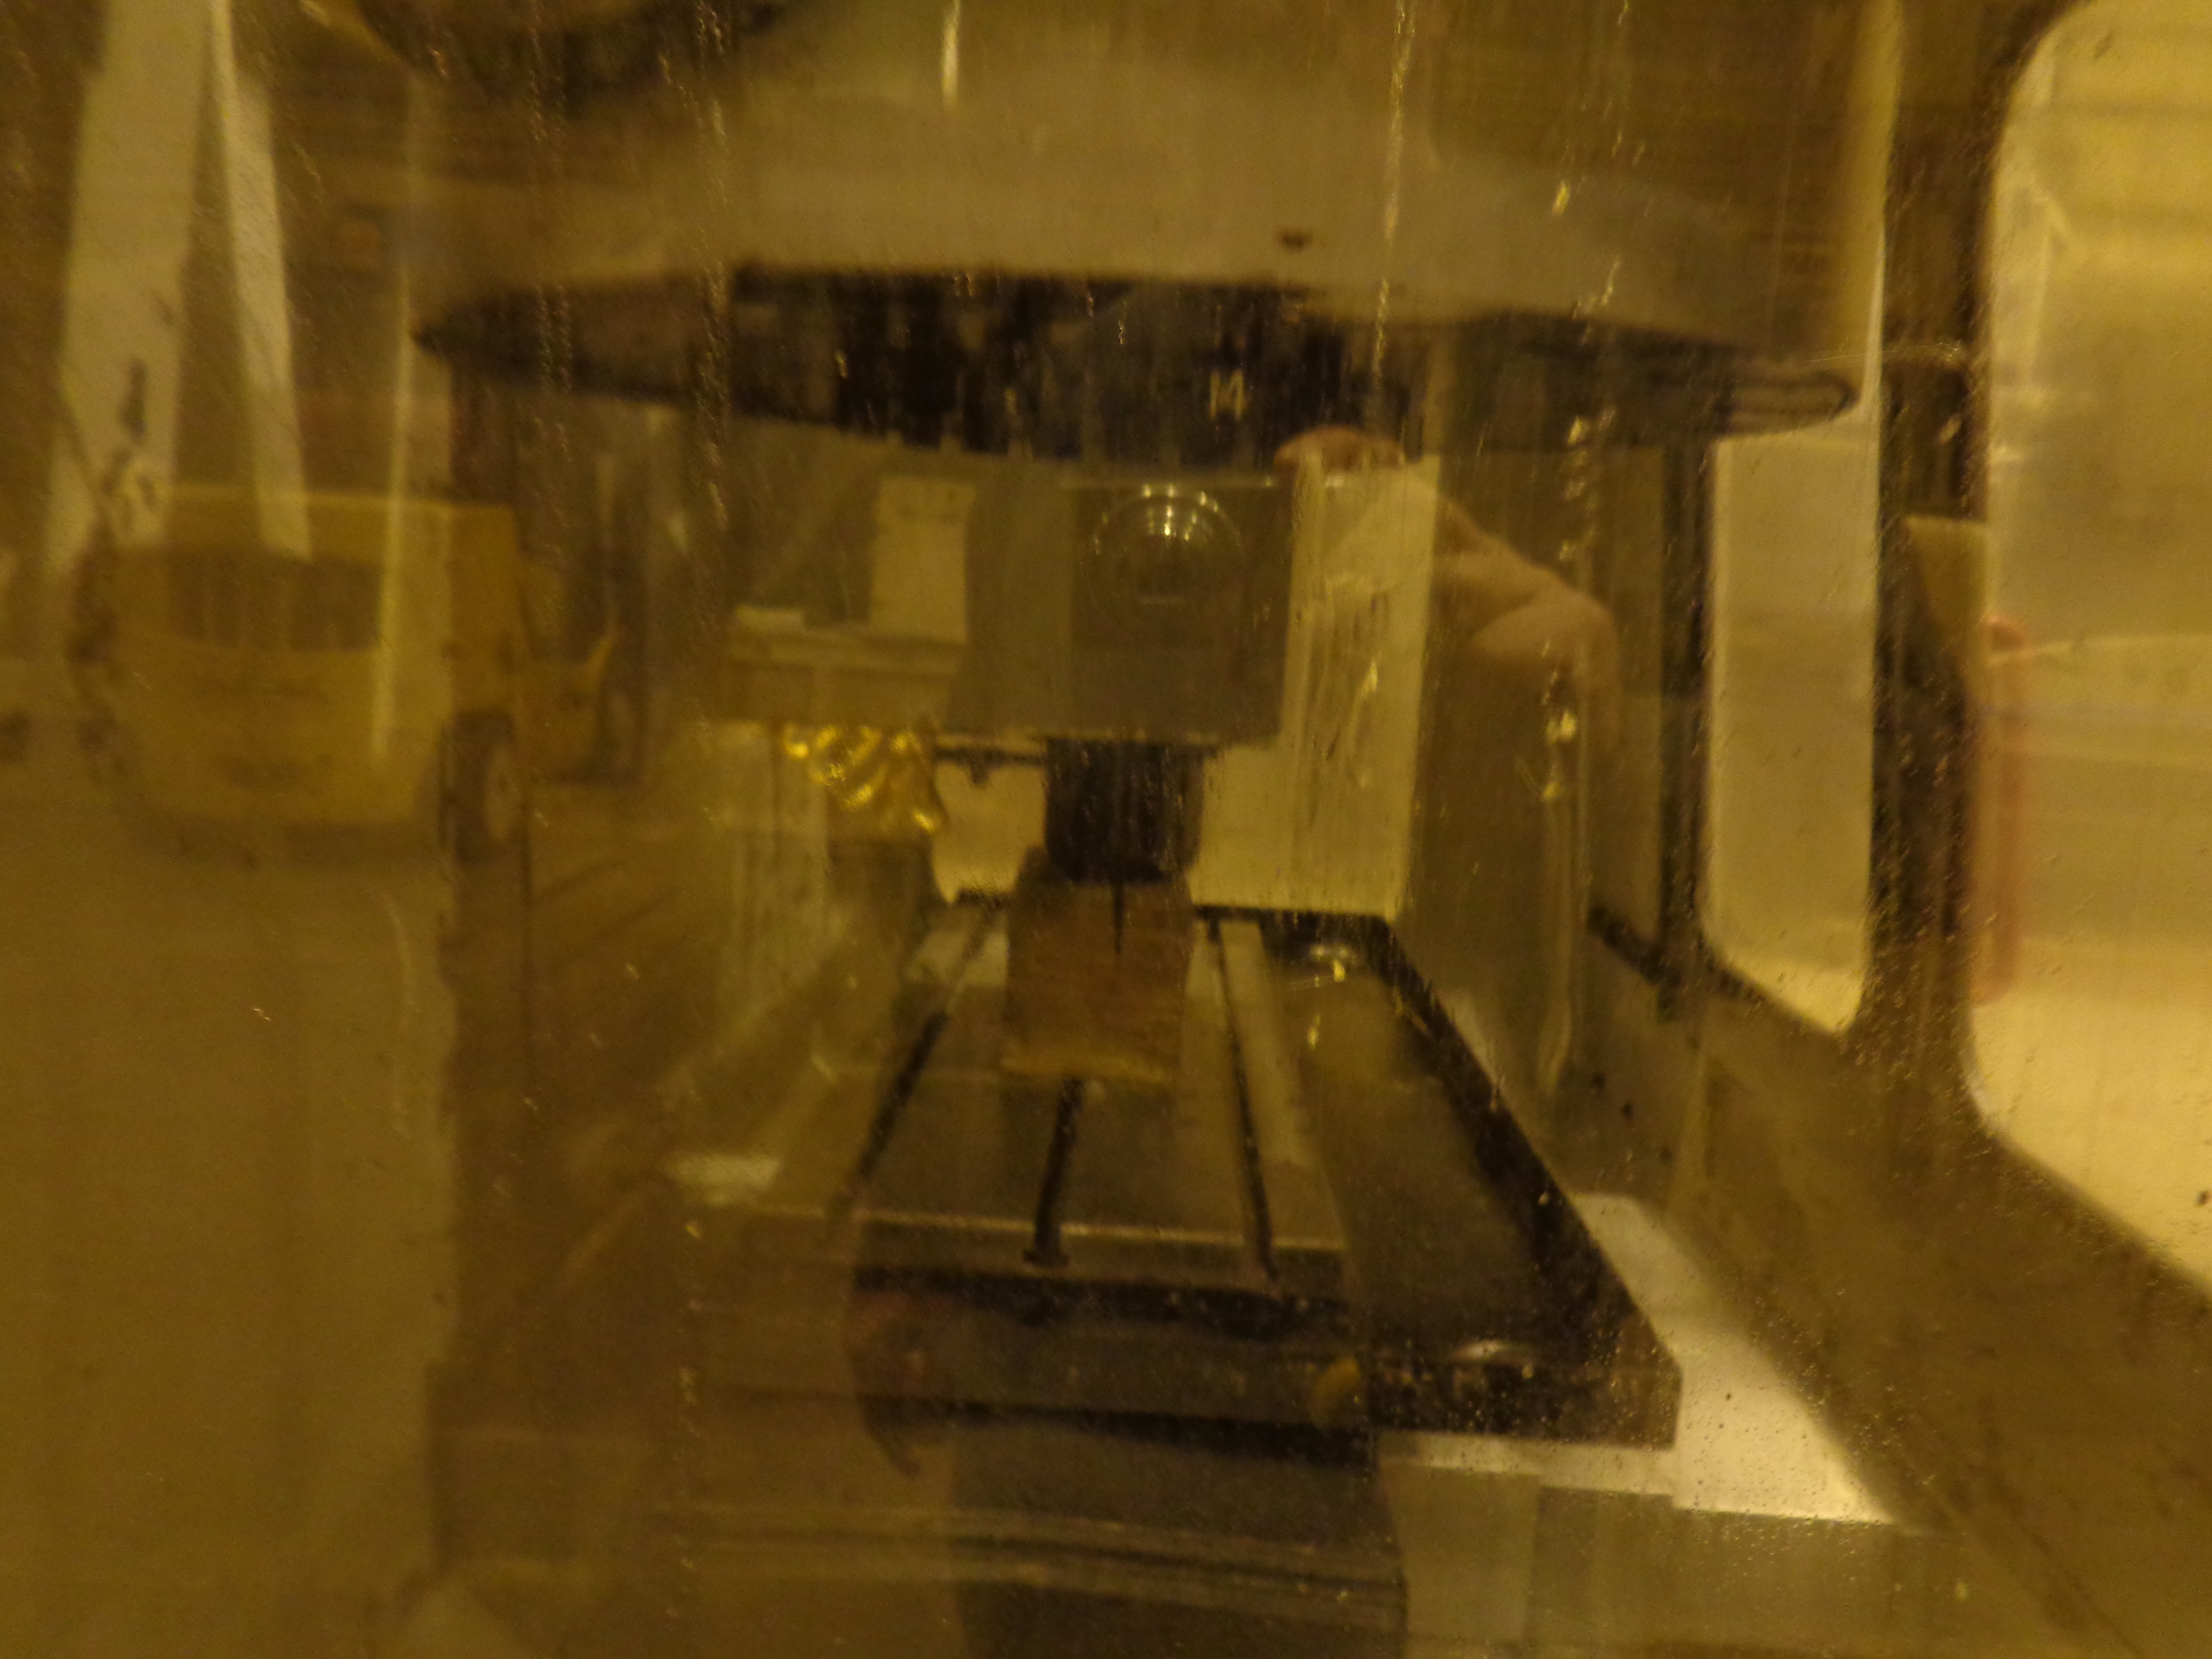 Haas VF-0E CNC Vertical Machining Center - Image 17 of 27